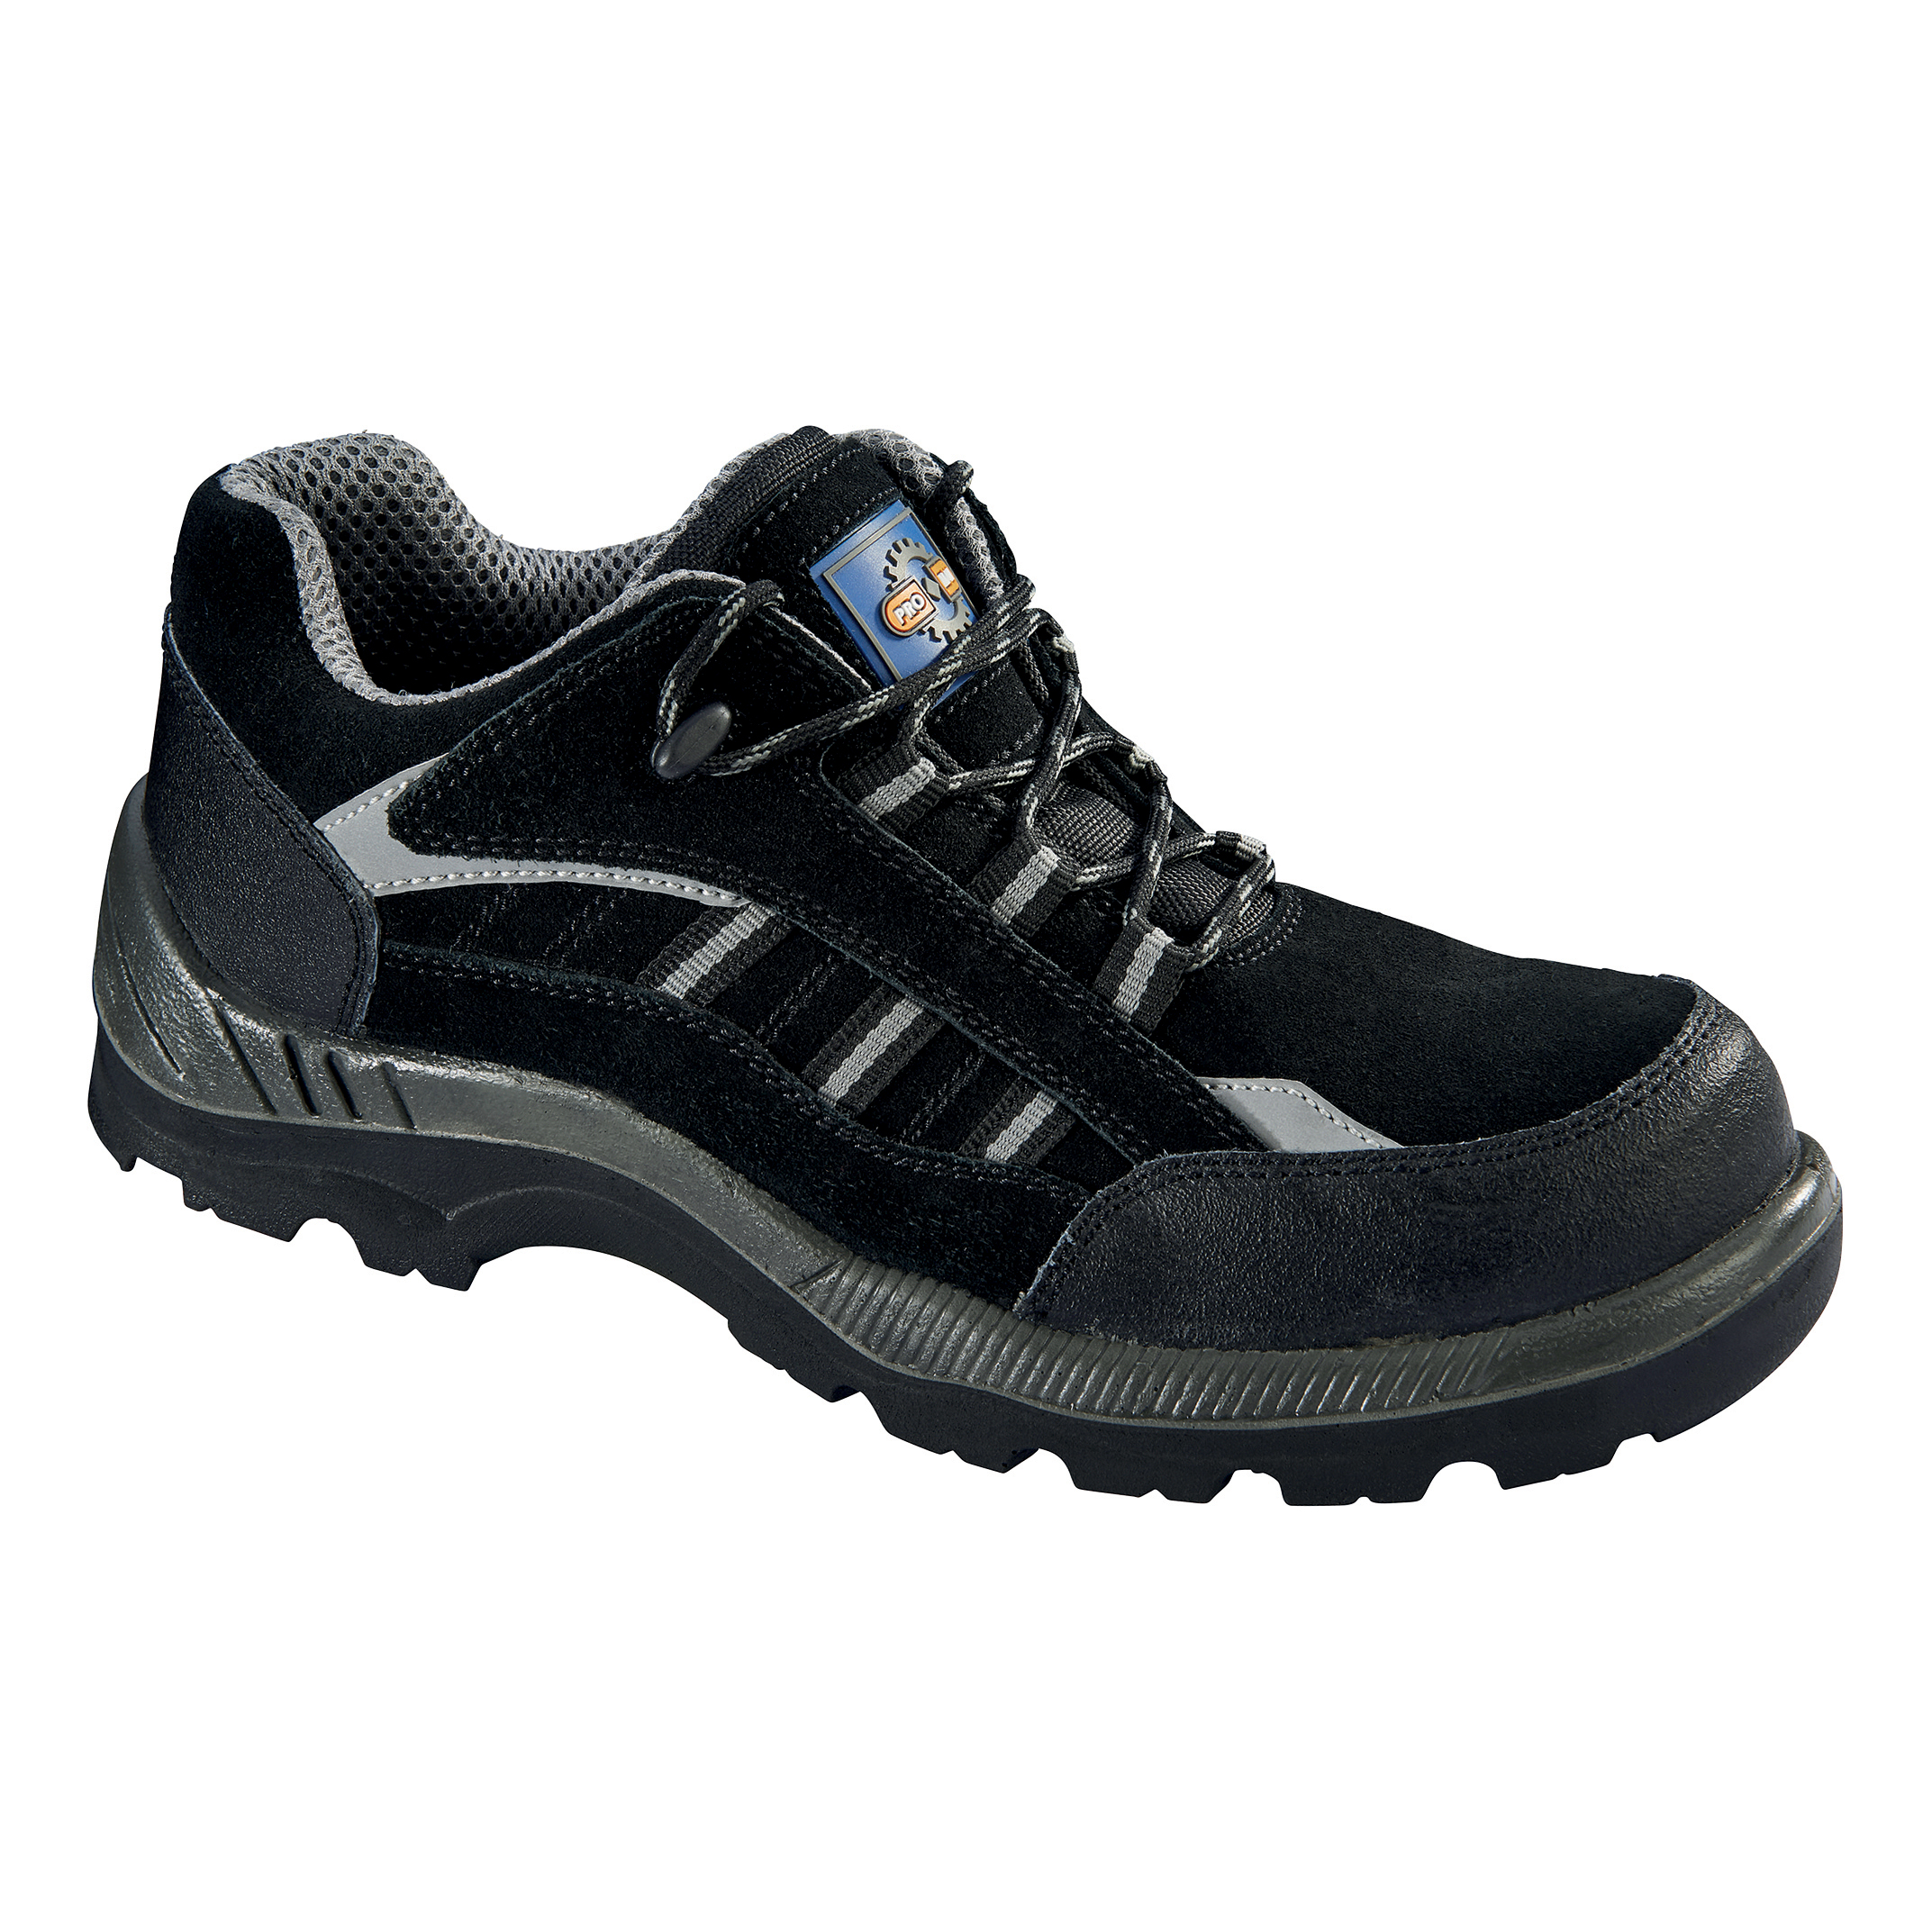 Safety shoes Rockfall ProMan Trainer Suede Fibreglass Toecap Black Size 14 Ref PM4040 14